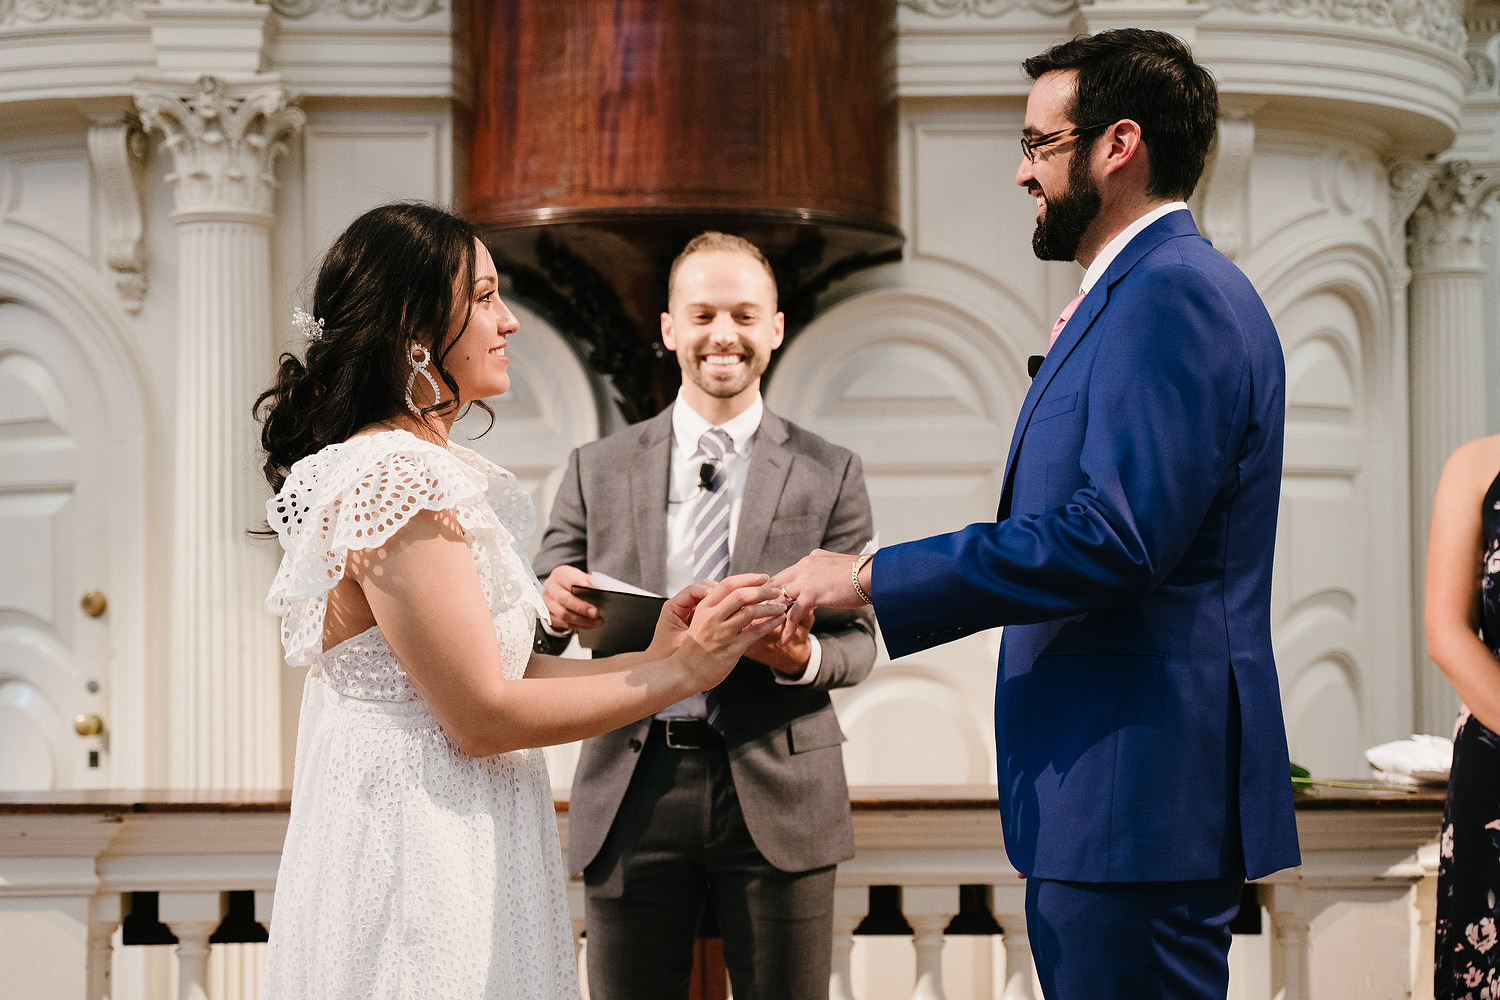 Boston Old South Meeting House wedding photo session 15